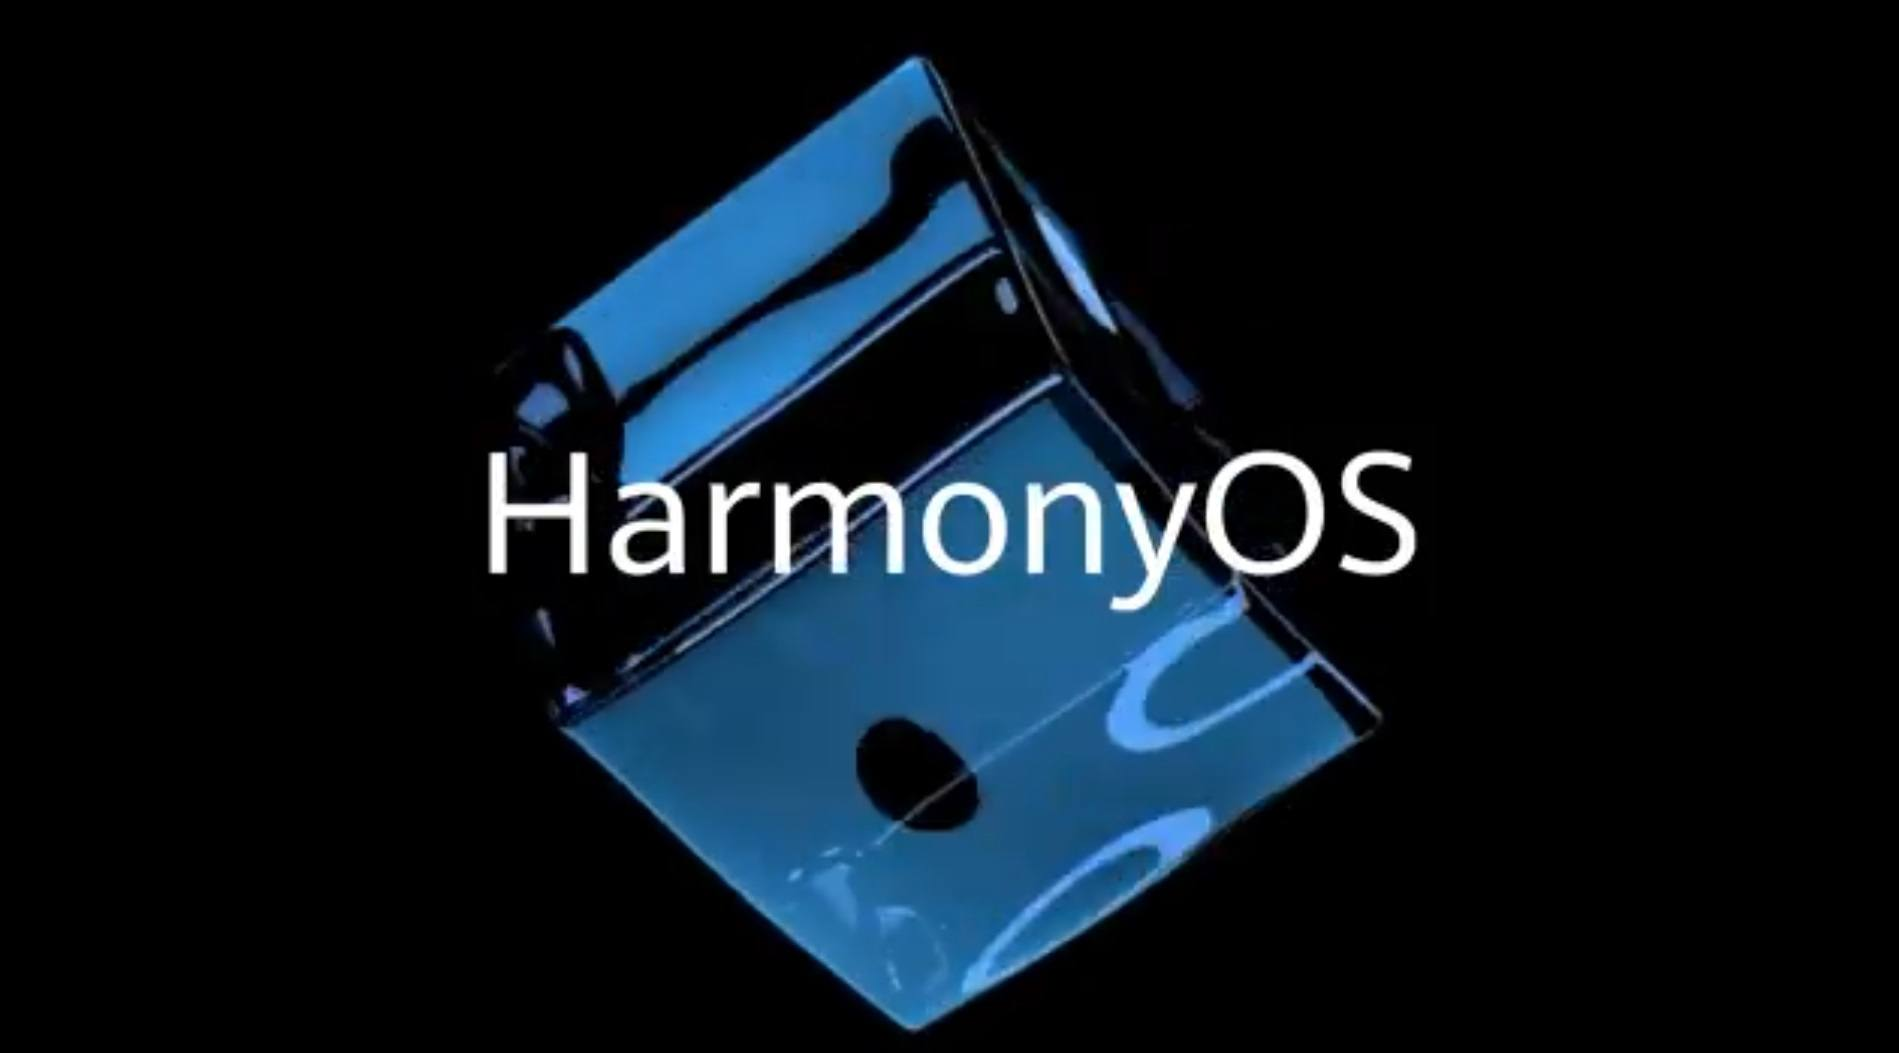 logo harmonyos huawei map kit